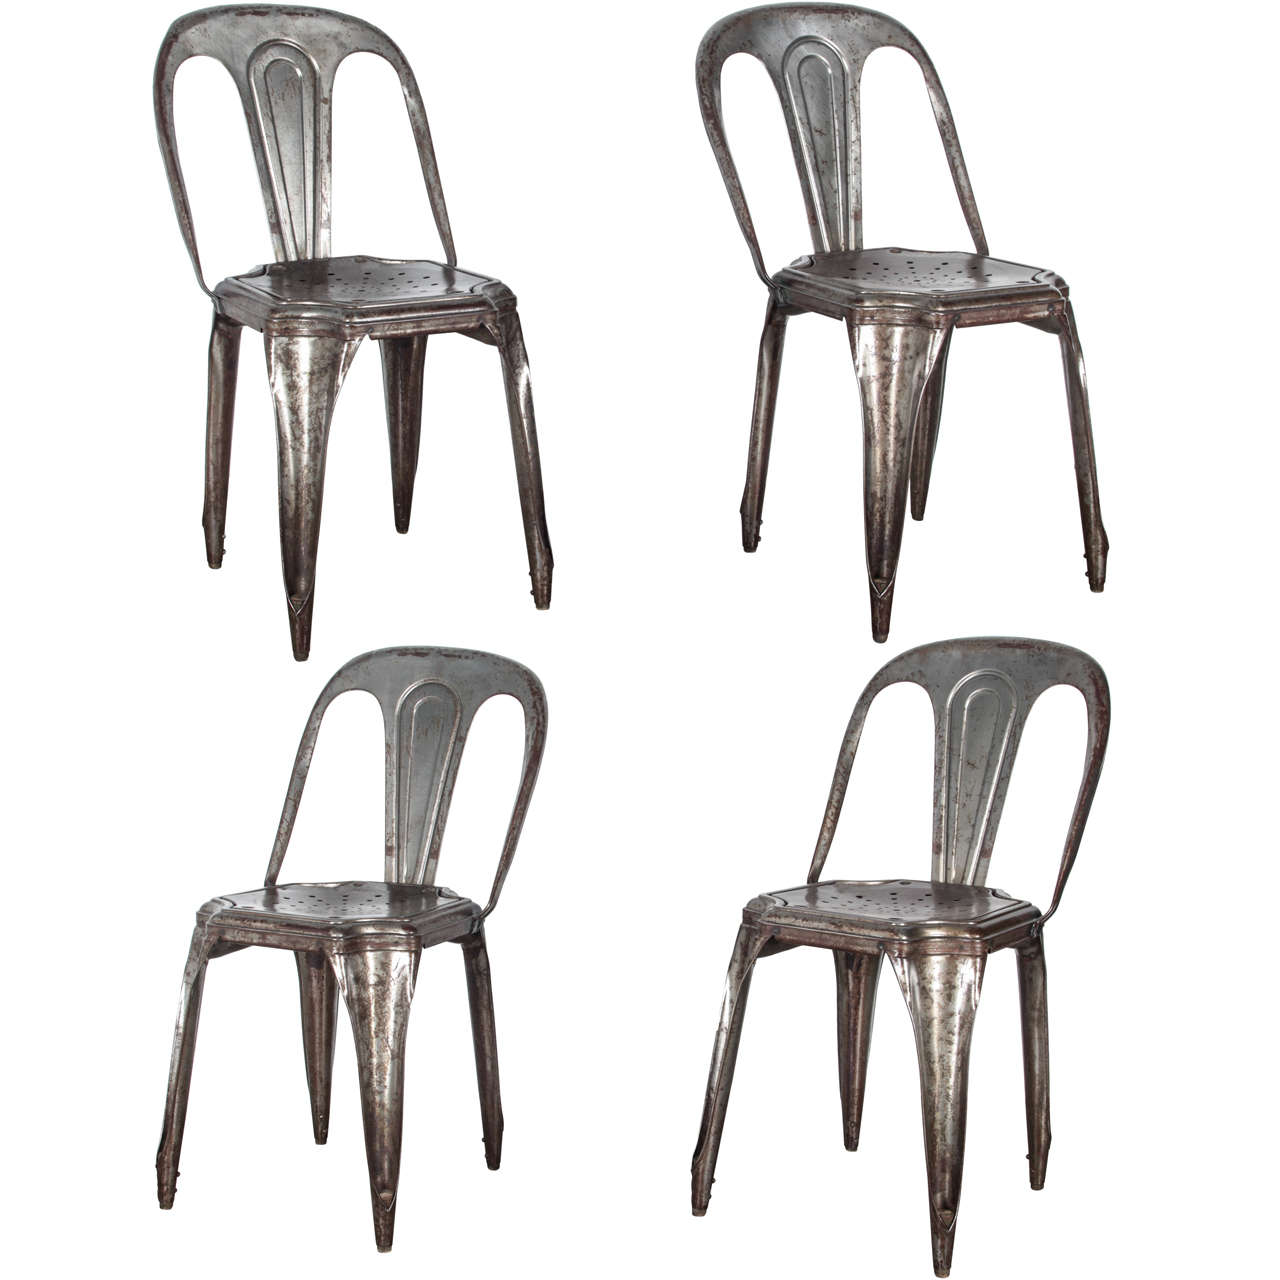 set of four metal stacking chairs by tolix for sale at 1stdibs